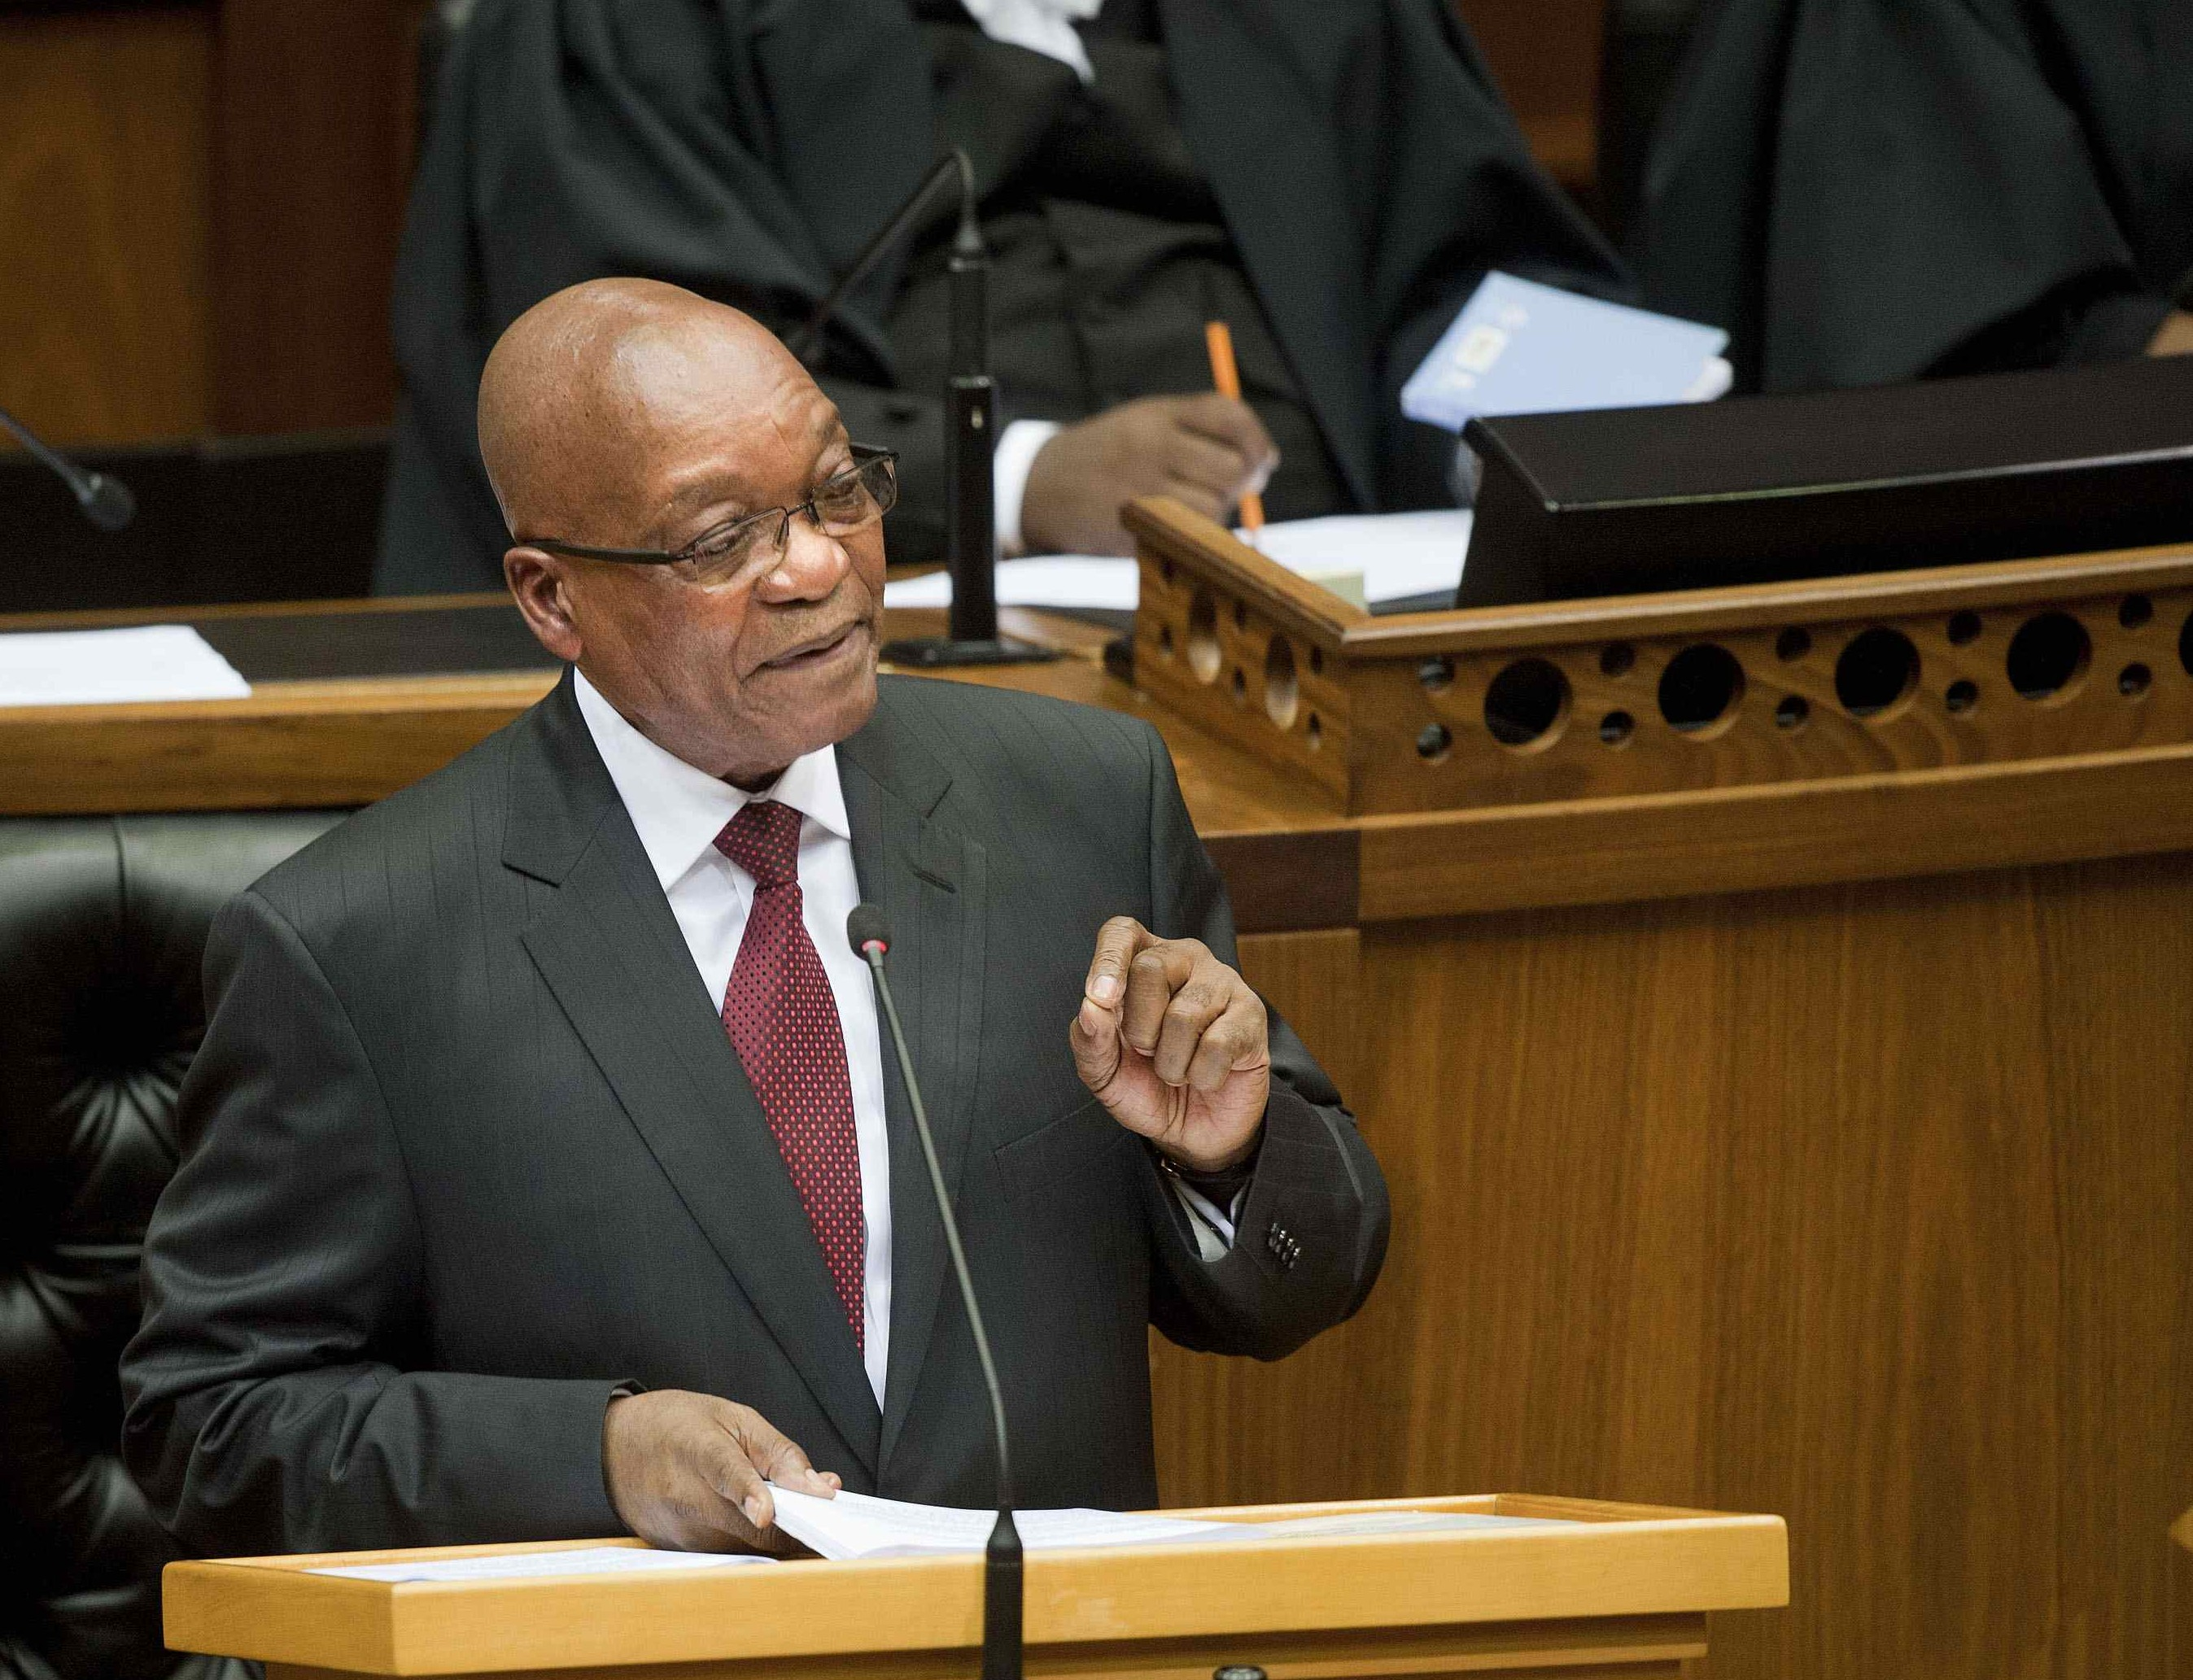 President Zuma's State of the Nation address (in full)